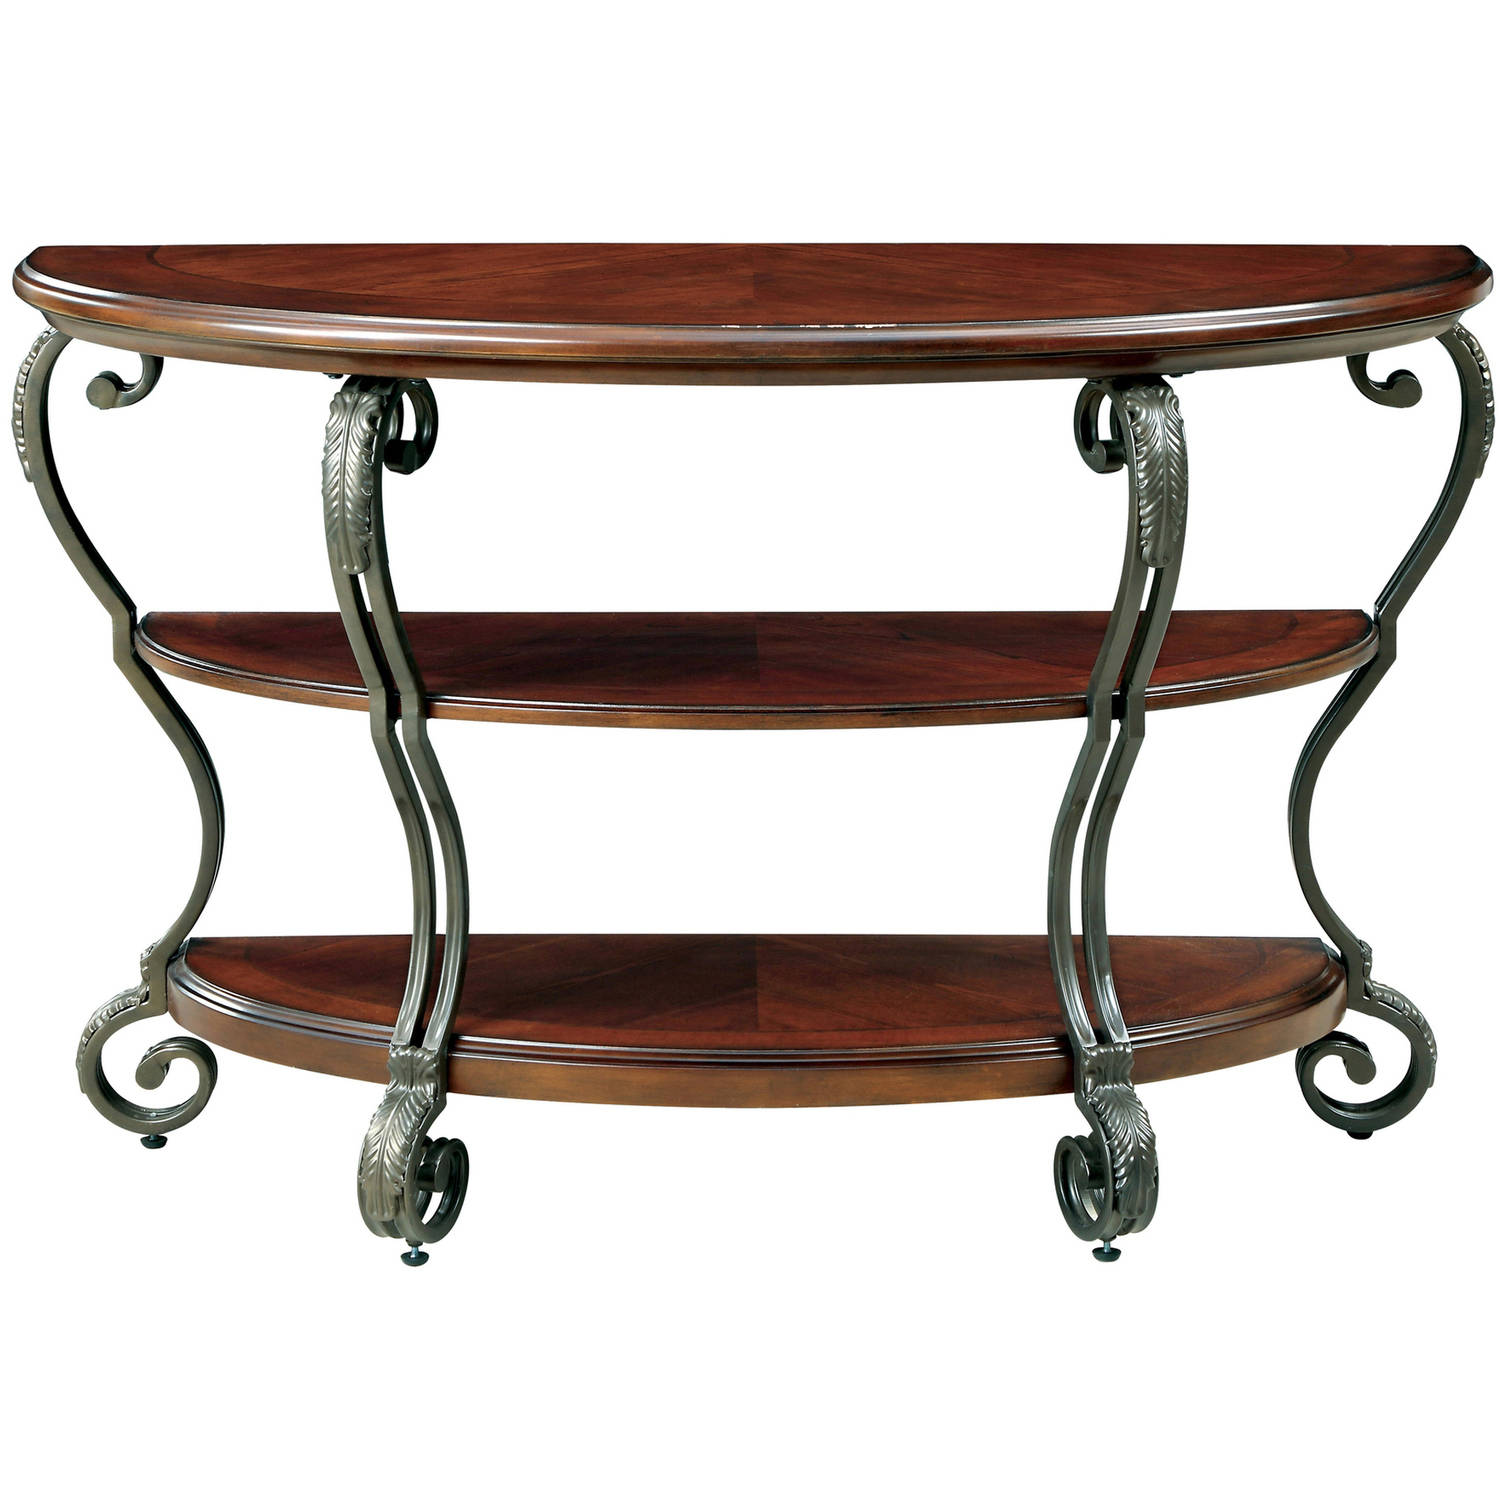 Furniture of America Ezell Sofa Table, Brown Cherry